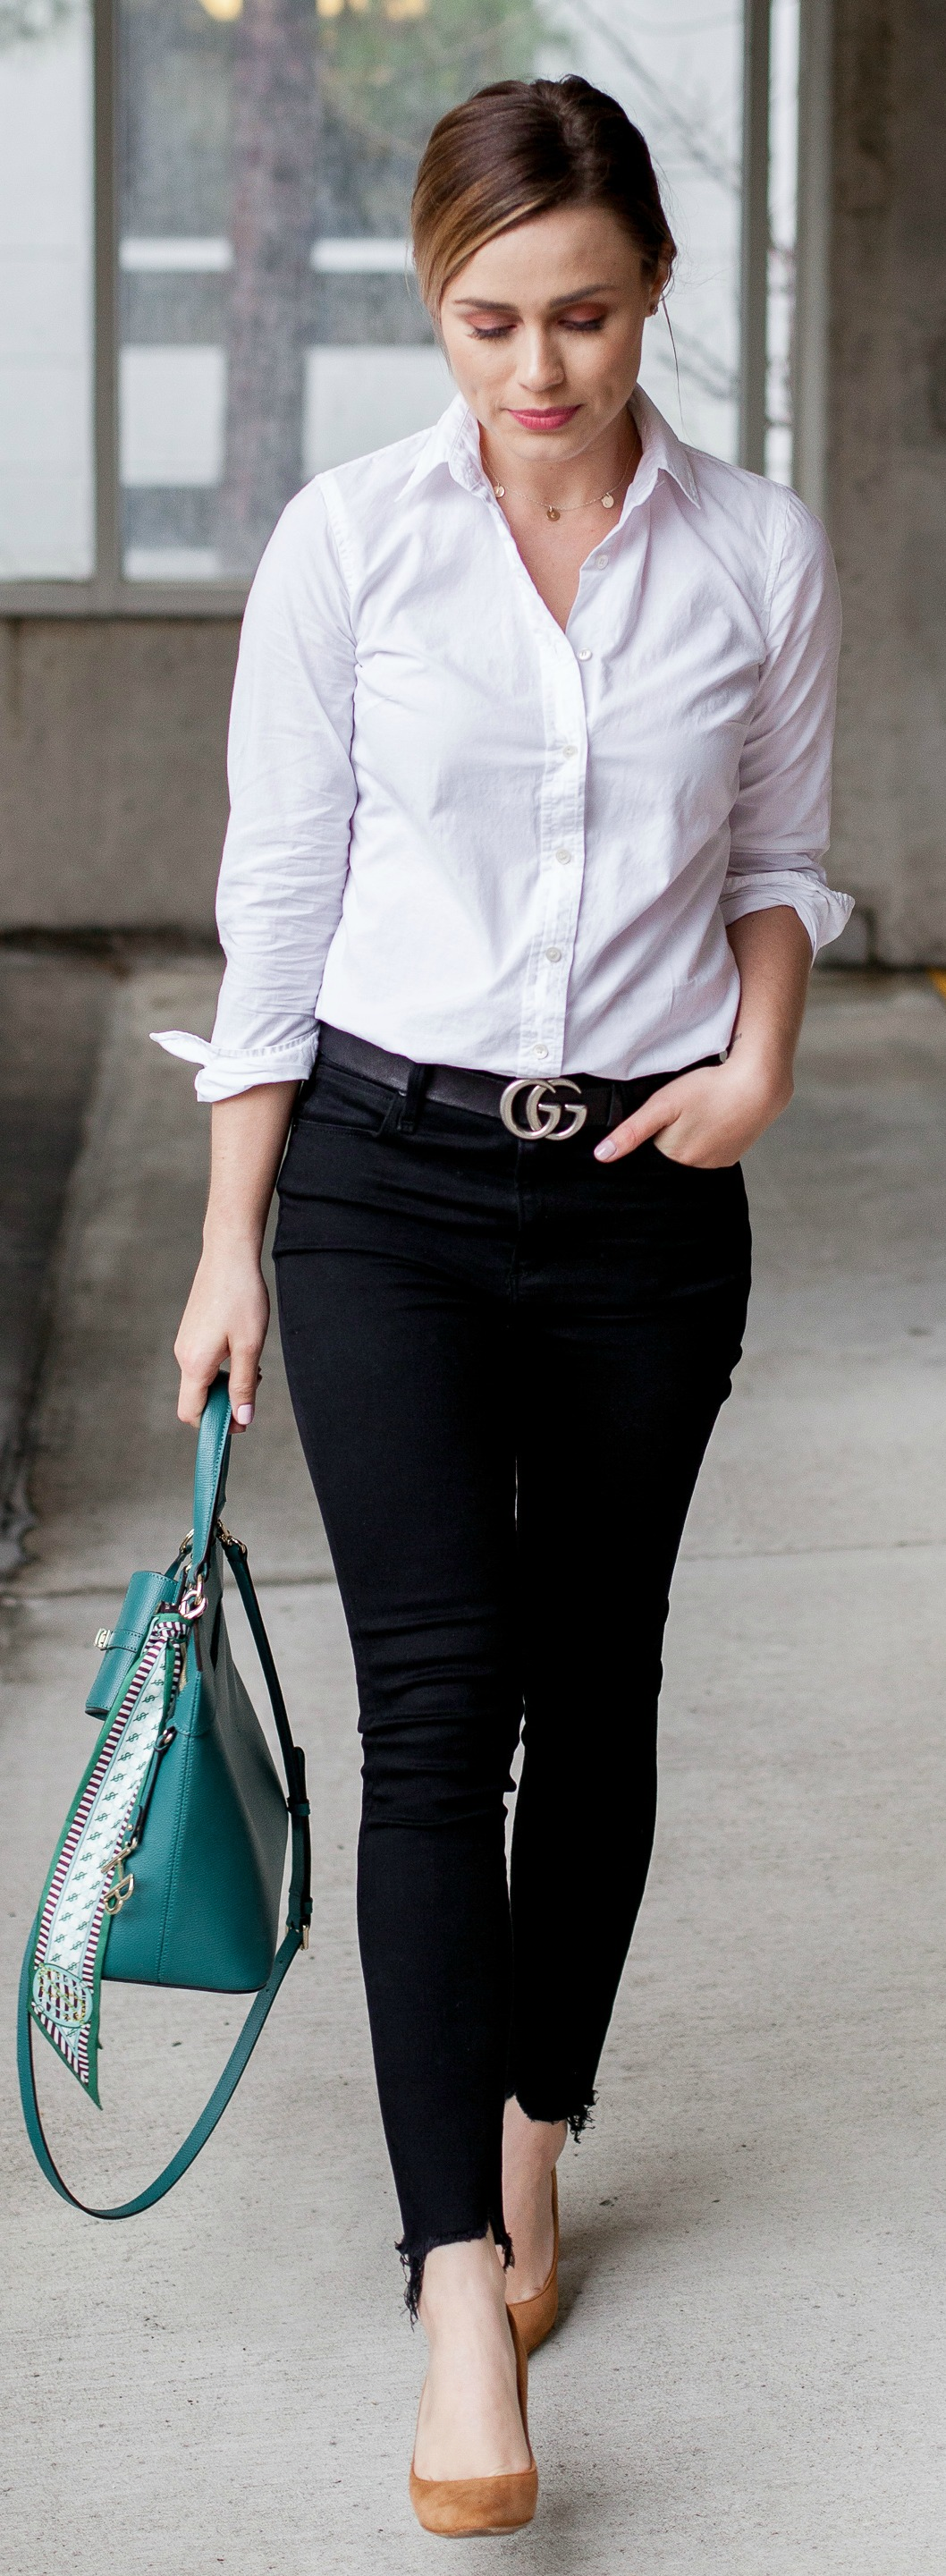 white button up outfit \ high waisted black skinny jeans \ henri bendel bag \ closet staples \ high and low fashion \ Uptown with Elly Brown